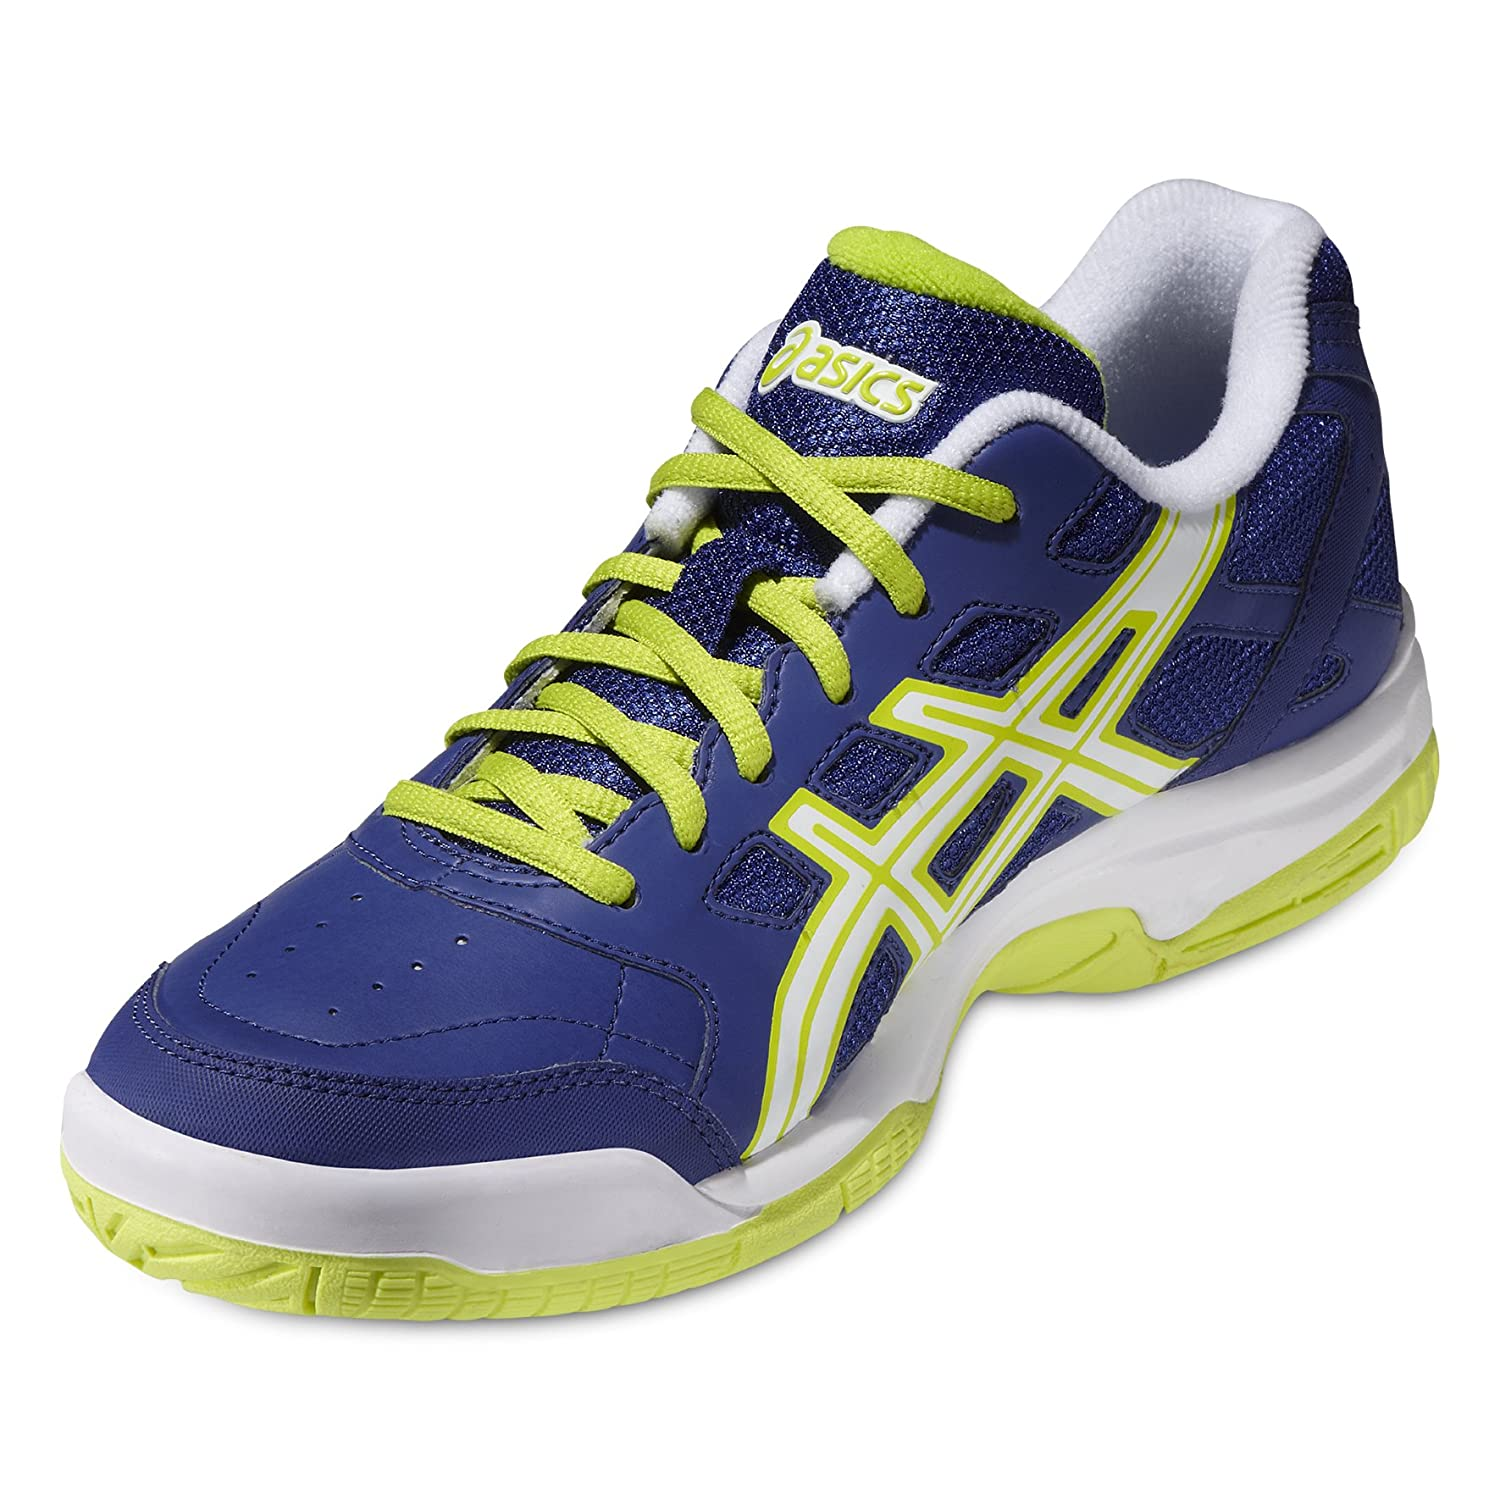 Asics Gel Padel MAX W Azul/Blanco/Lima (41.5): Amazon.es: Zapatos ...